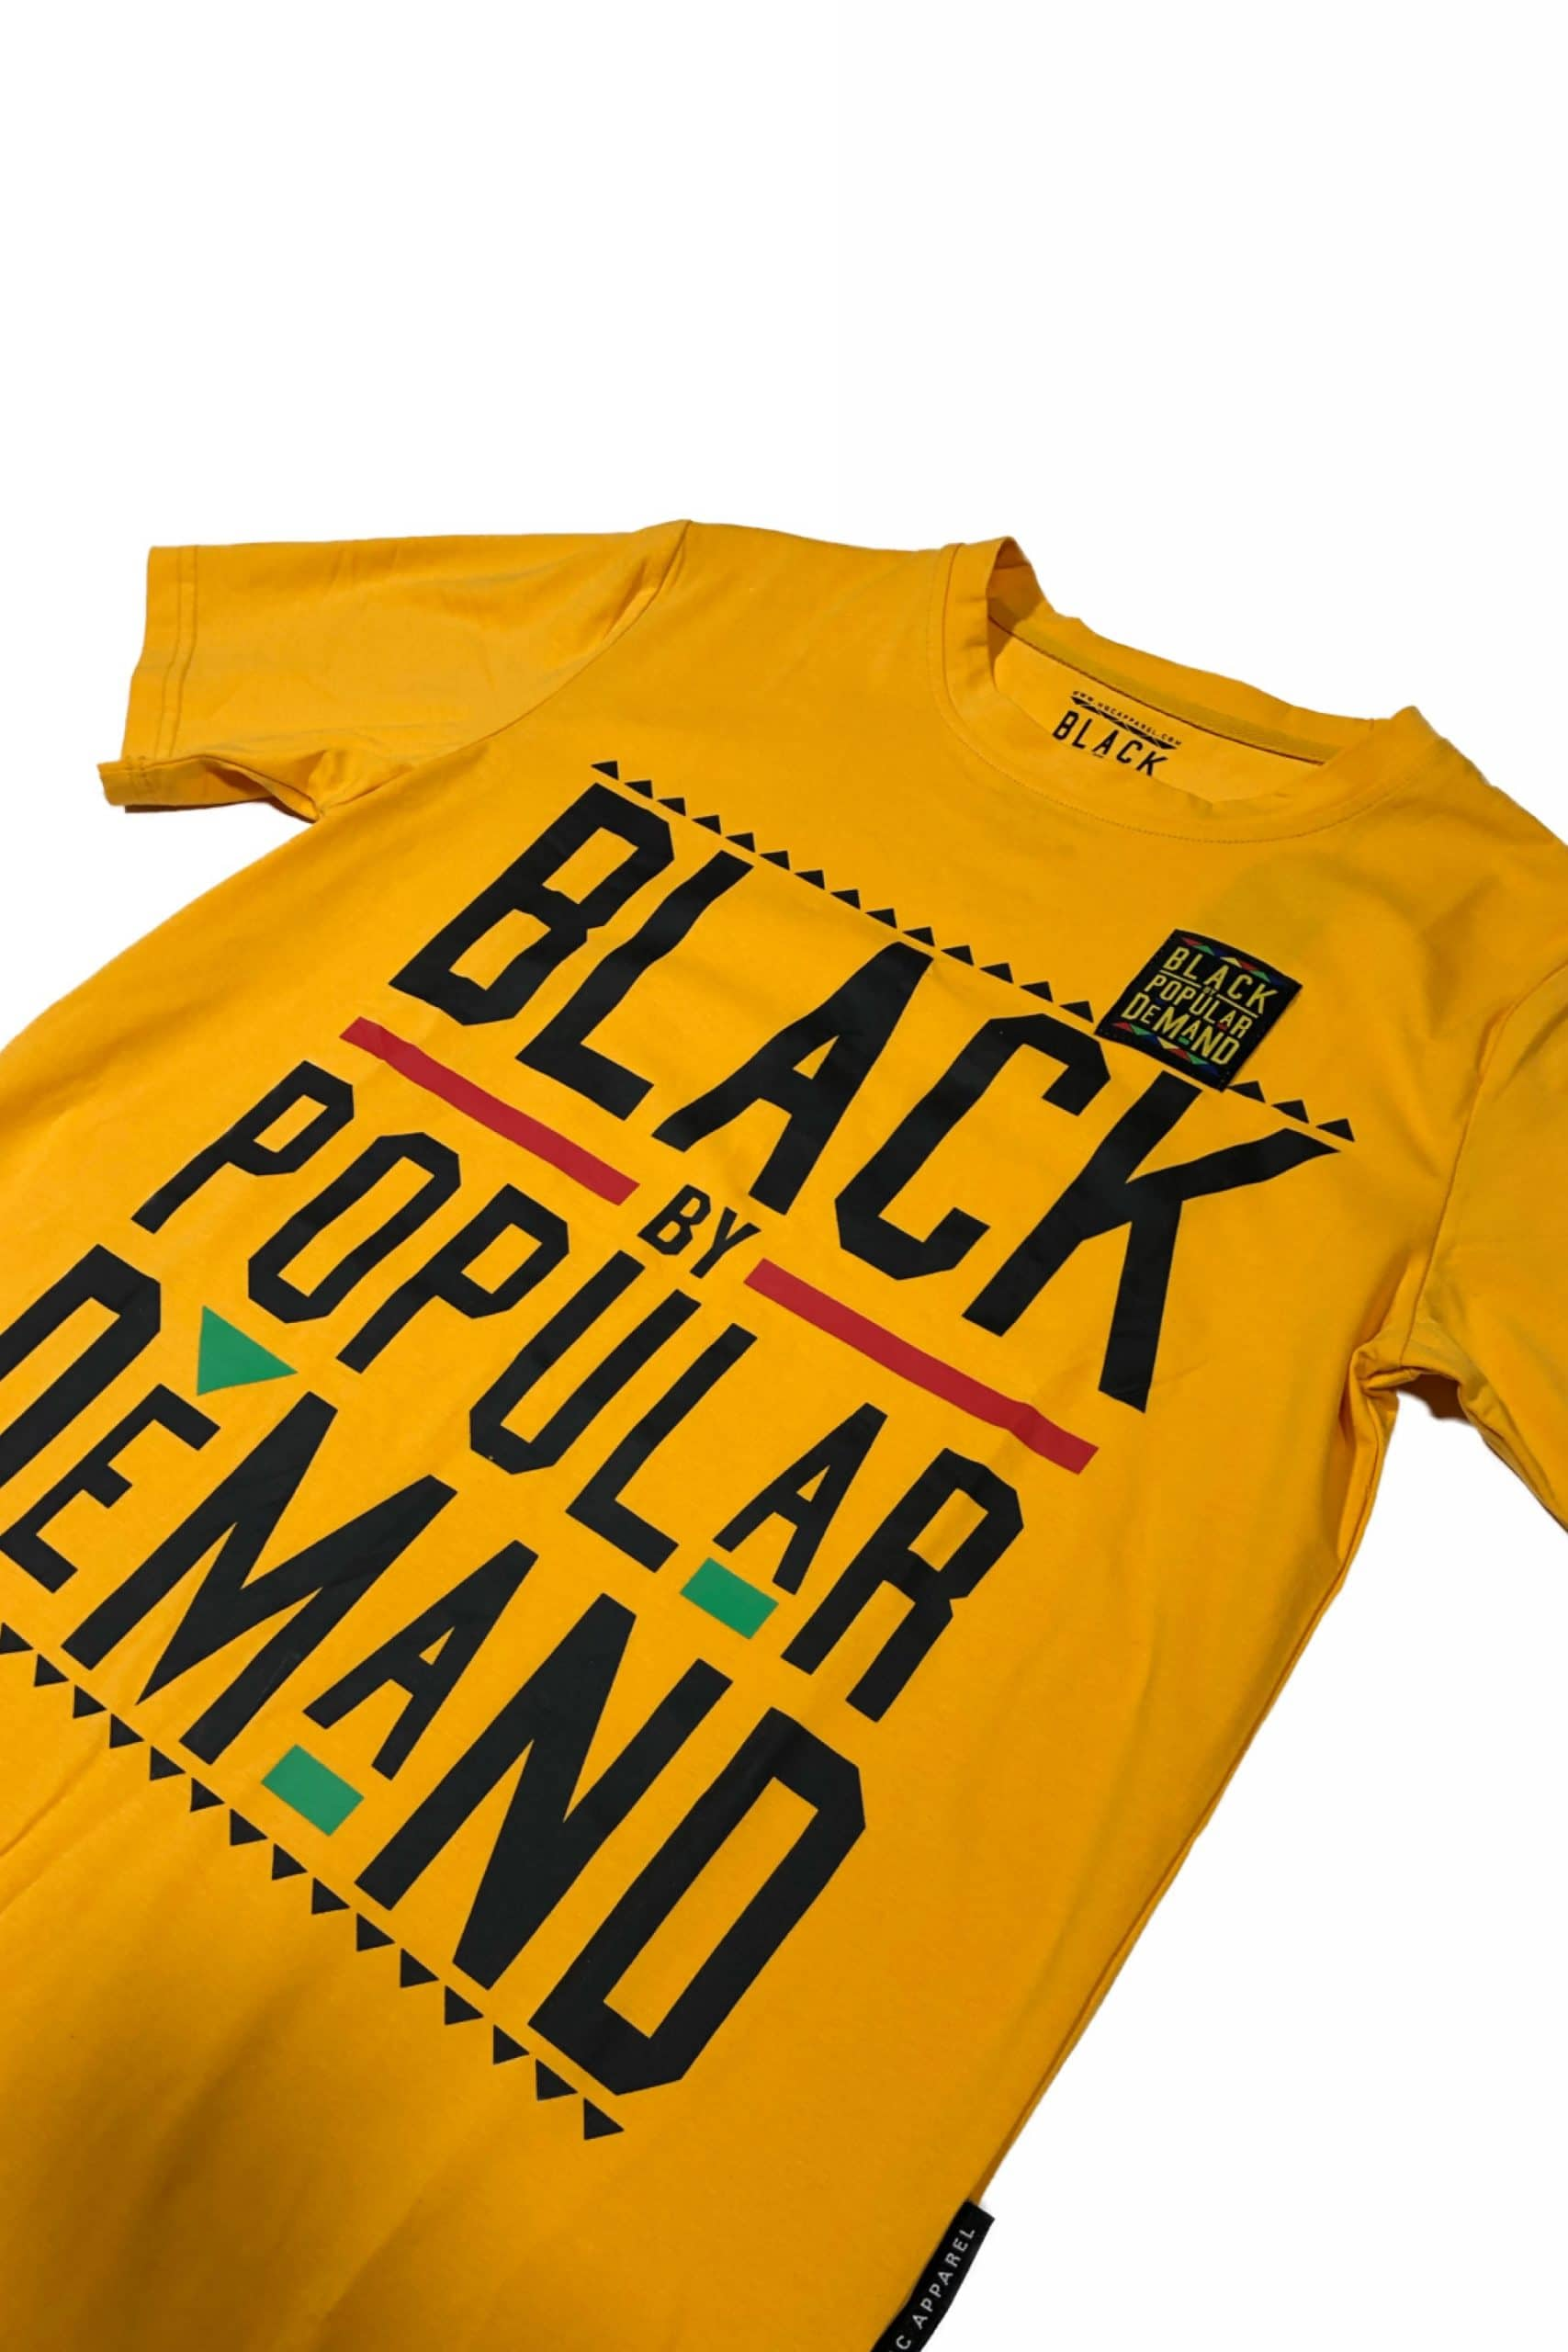 Black by Popular Demand® Yellow Unisex Patched Shirt HGC Apparel